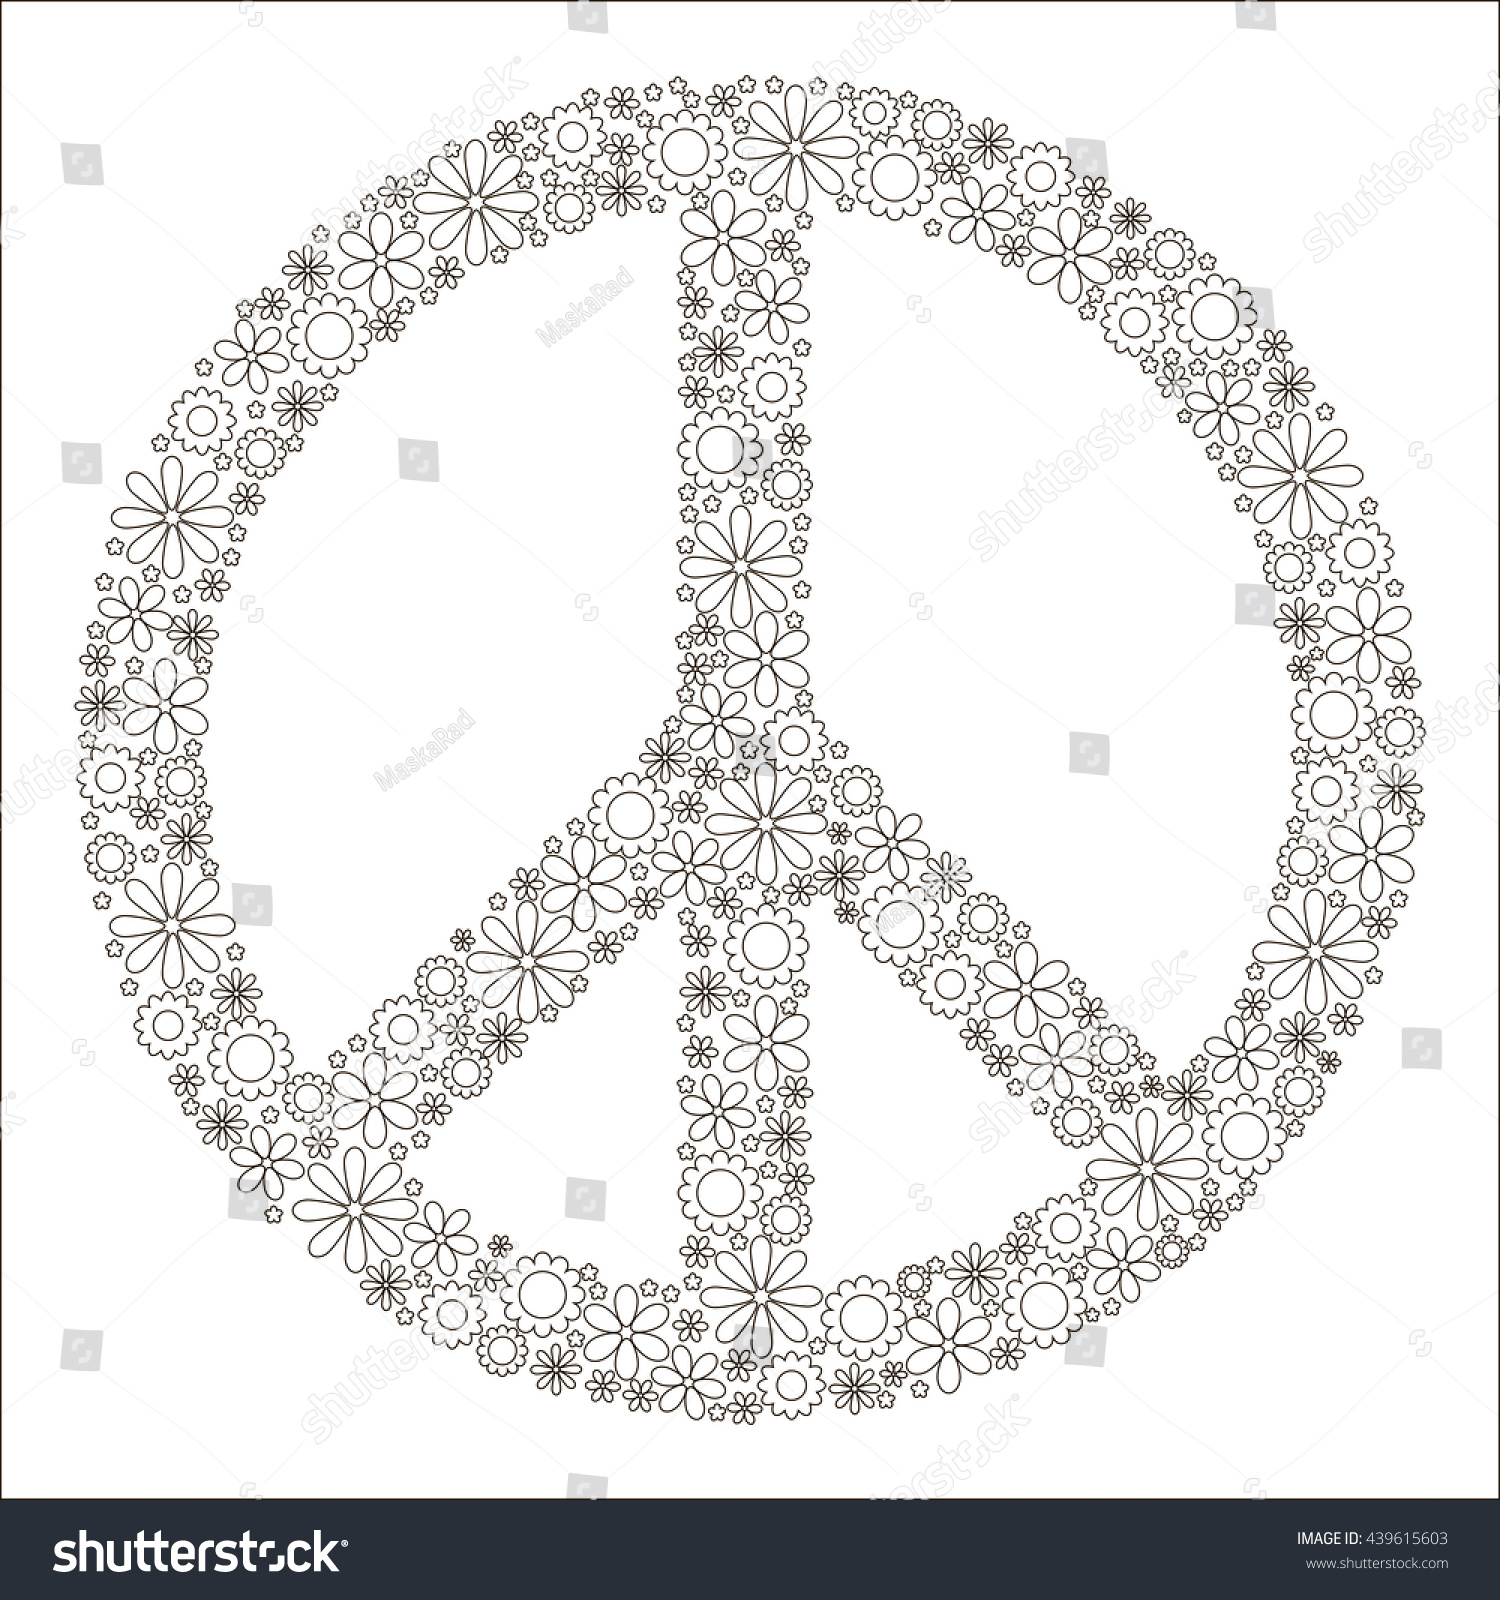 Childrens Coloring Book Symbol Peace Pacific Stock Vector 2018